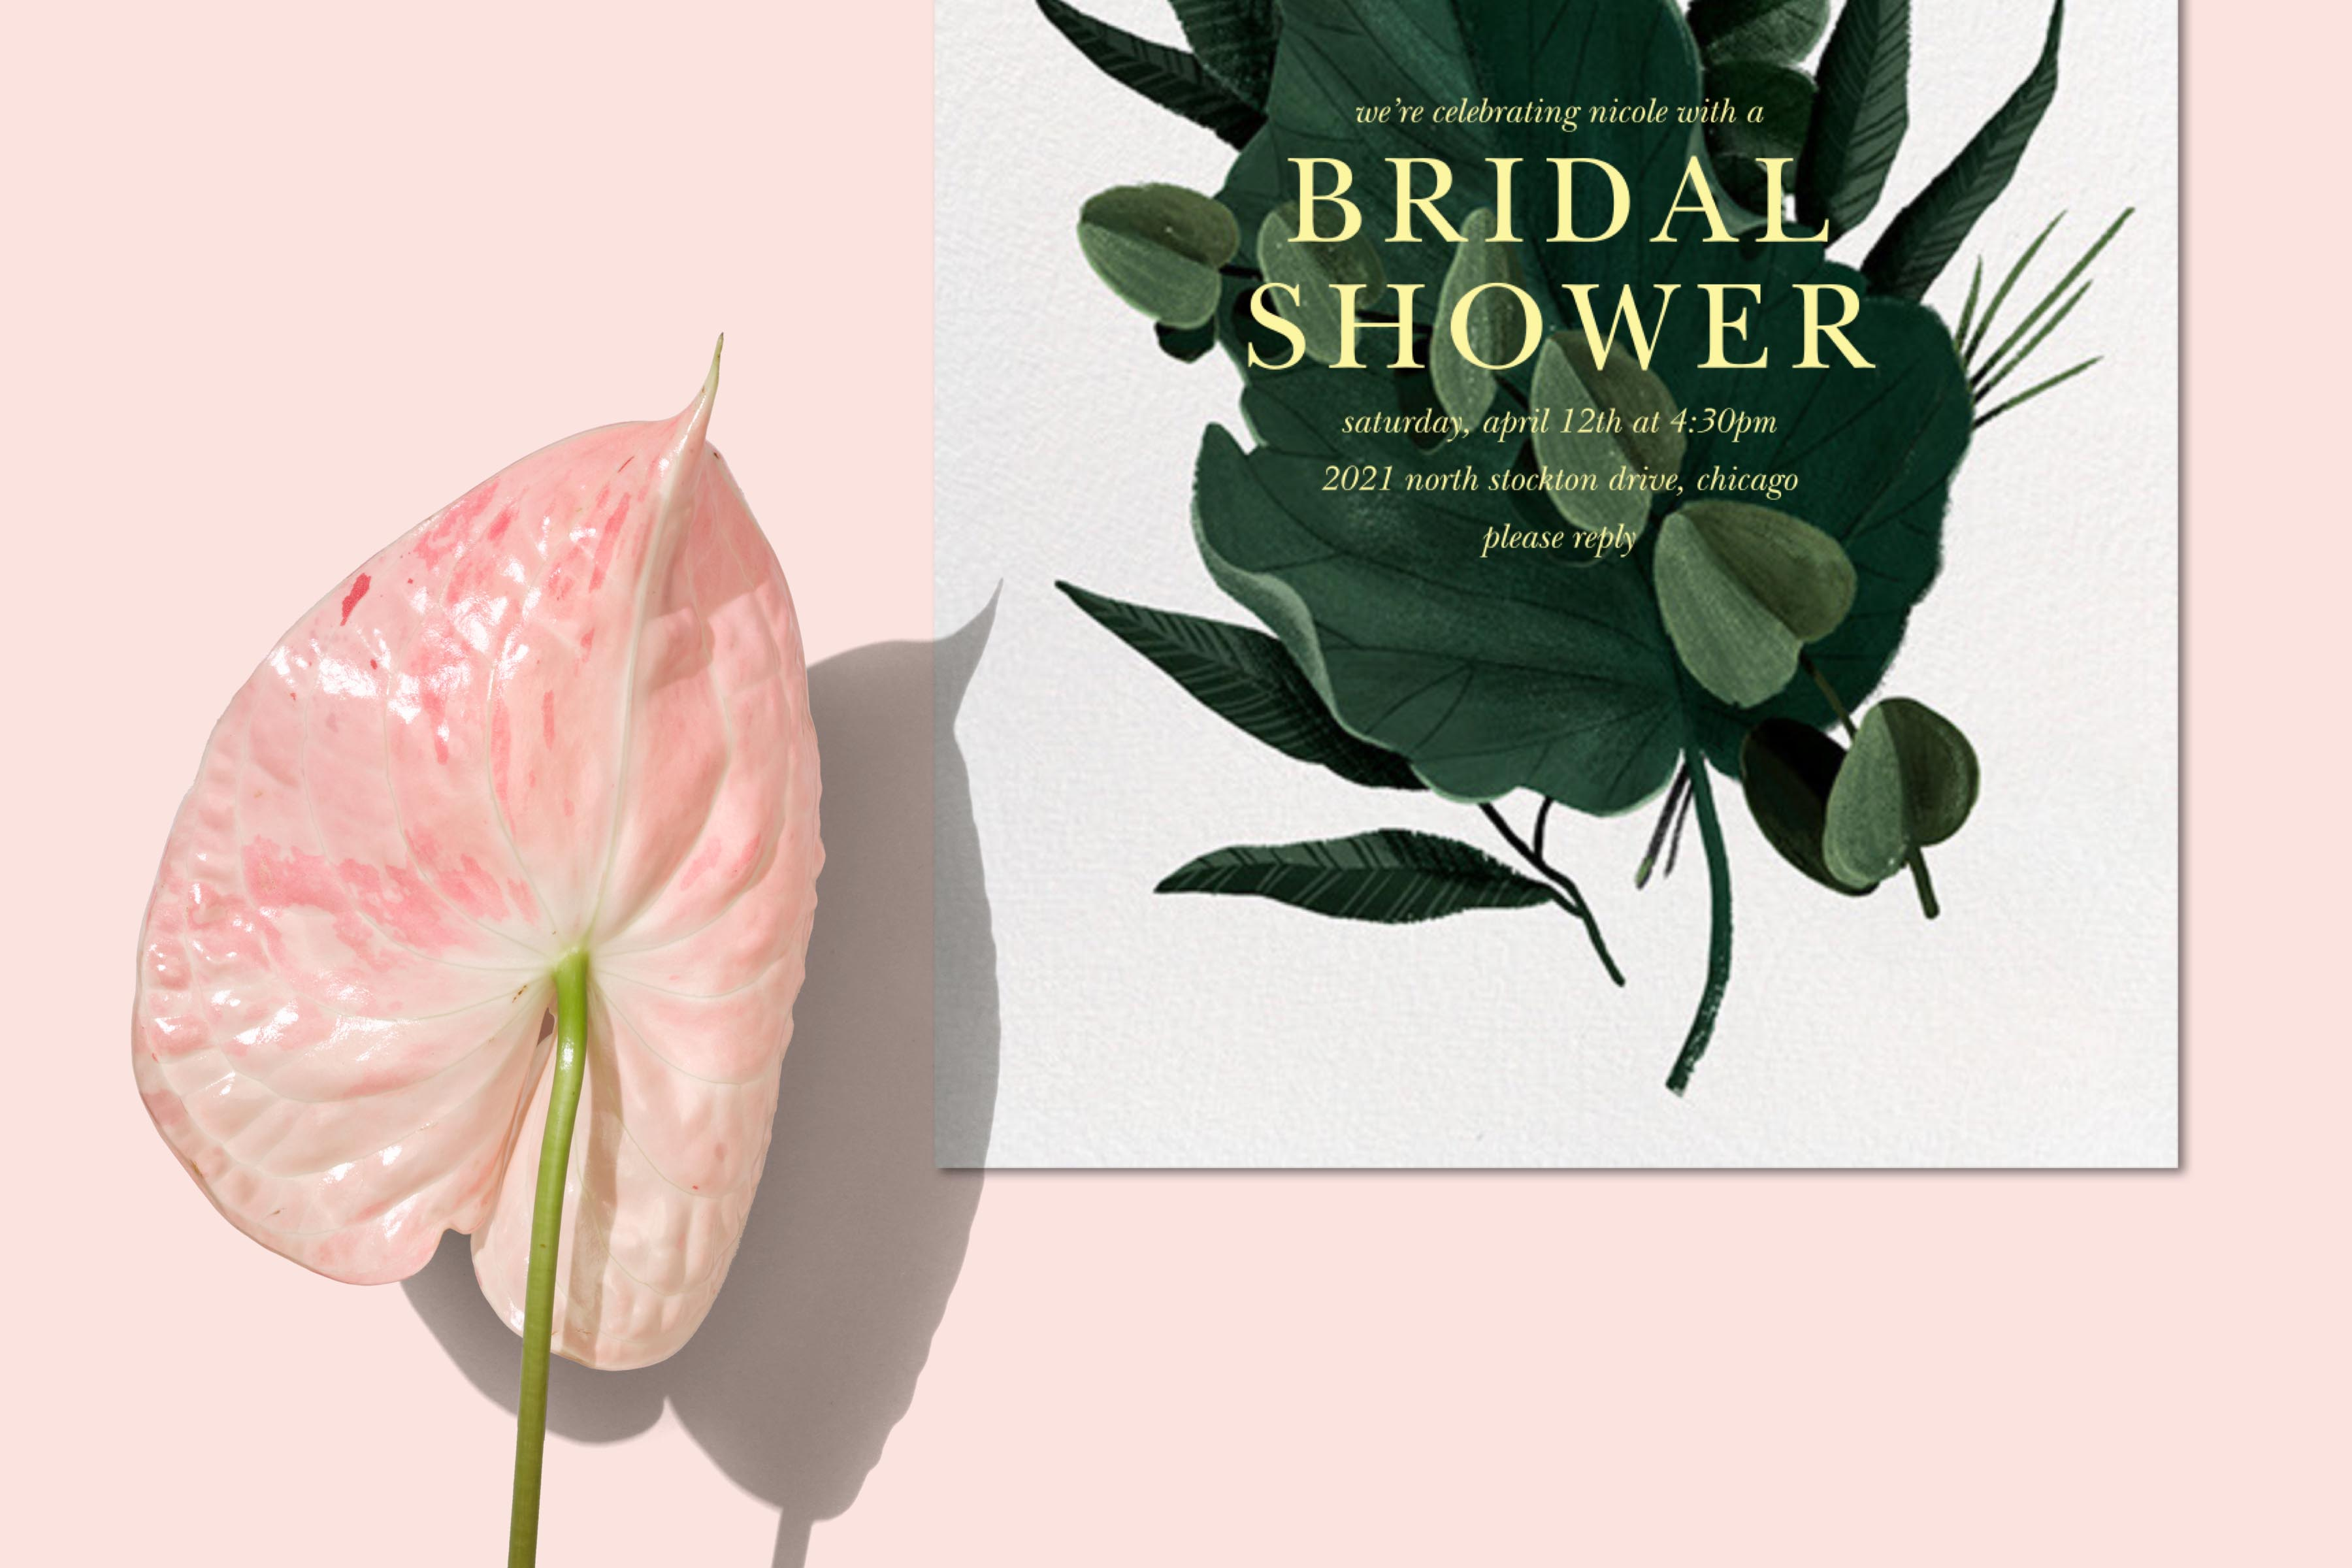 Classic bridal shower decor, supplies, gifts, and party favors